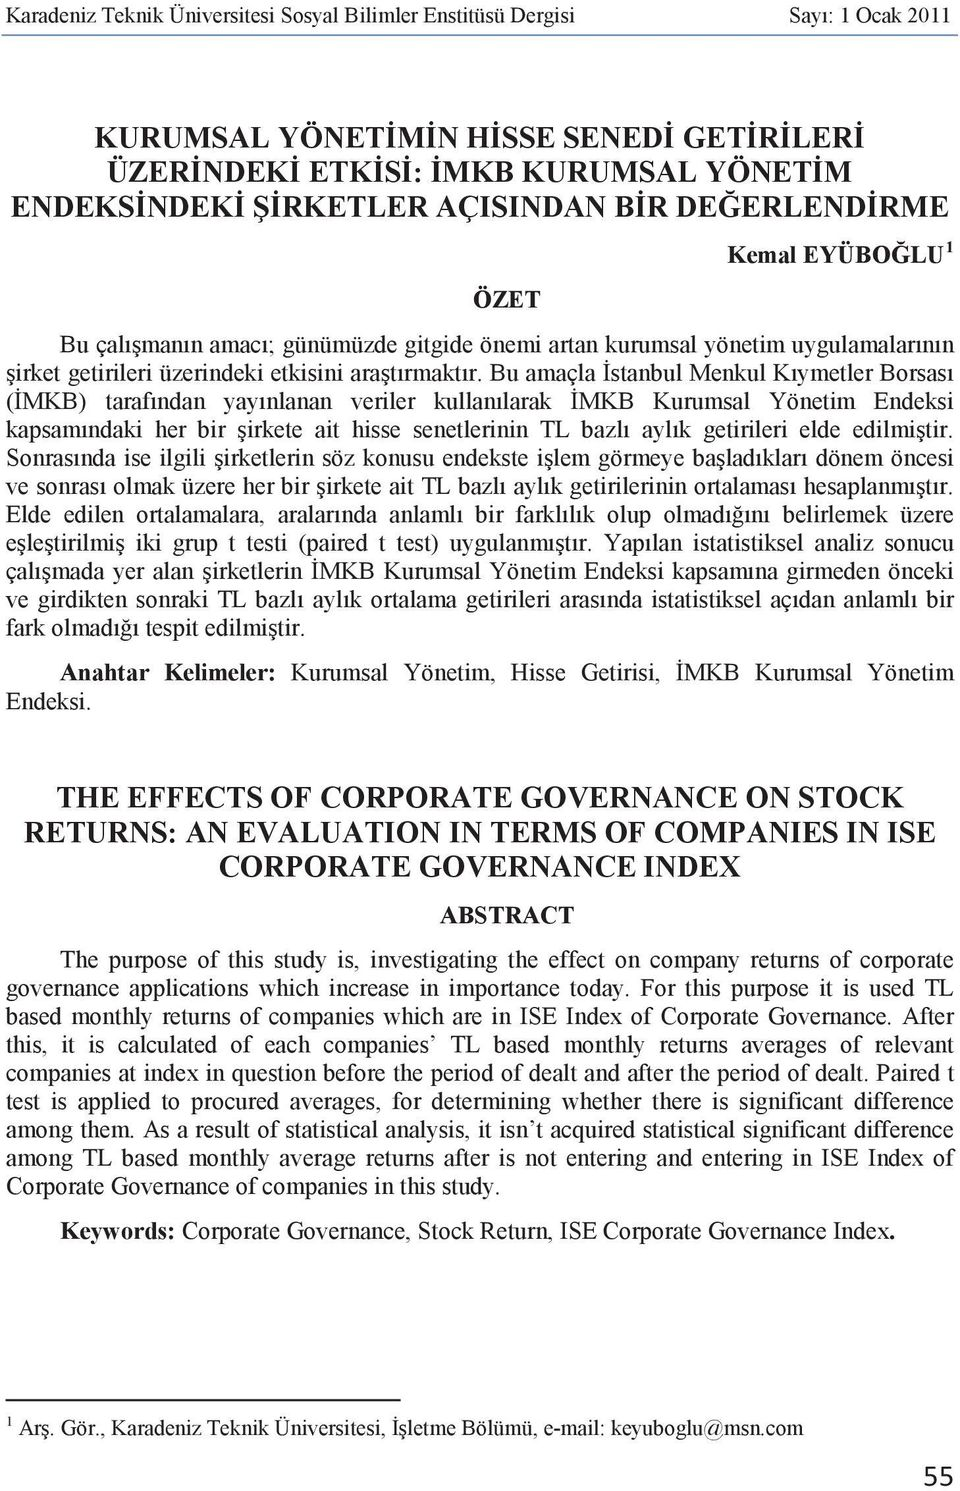 returns of corporate governance applications which increase in importance today. For this purpose it is used TL based monthly returns of companies which are in ISE Index of Corporate Governance.